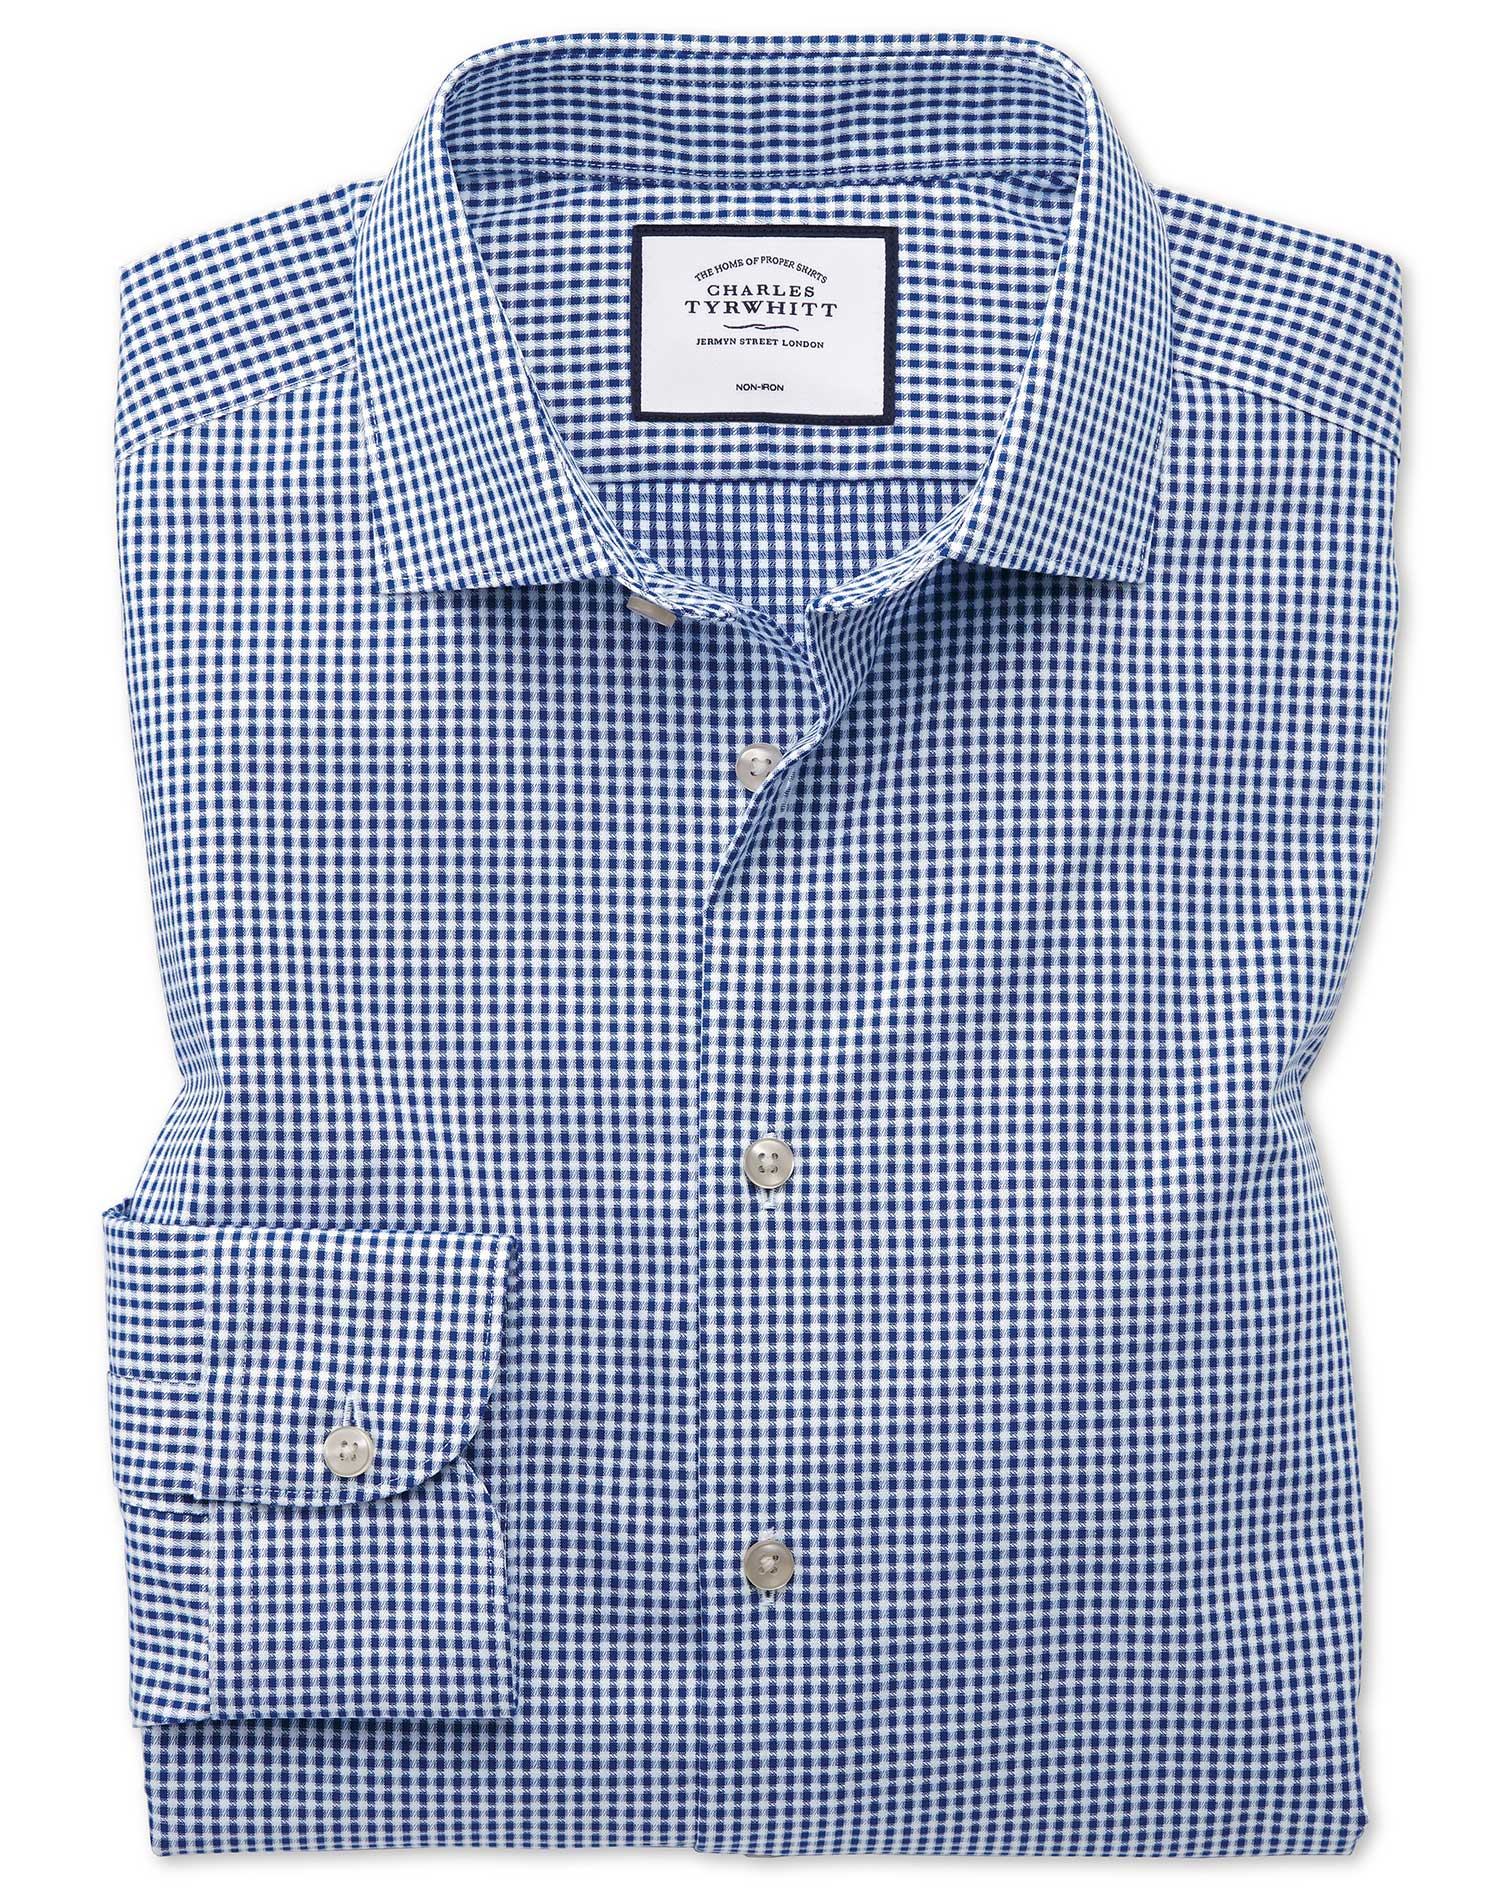 Slim Fit Business Casual Non-Iron Square Texture Navy Cotton Formal Shirt Single Cuff Size 15.5/33 b